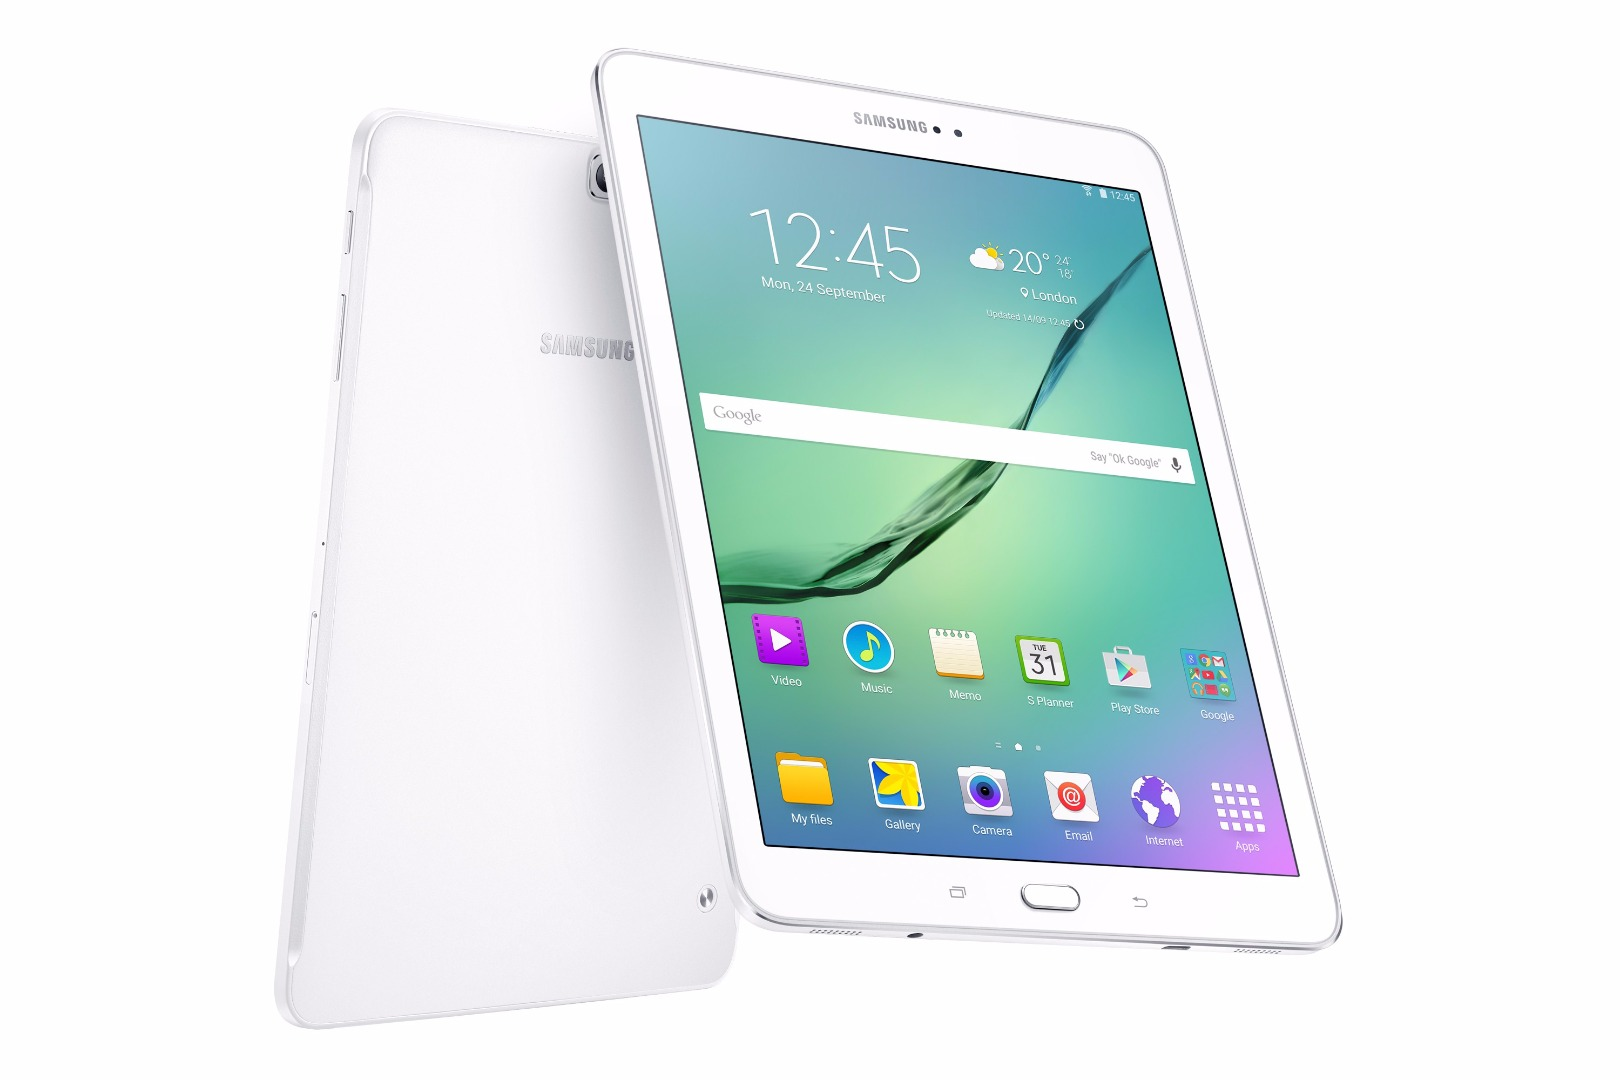 Galaxy Tab 9.7 9 7 Galaxy Tab S2 Vs Ipad Air 2 Design Specs Price And More